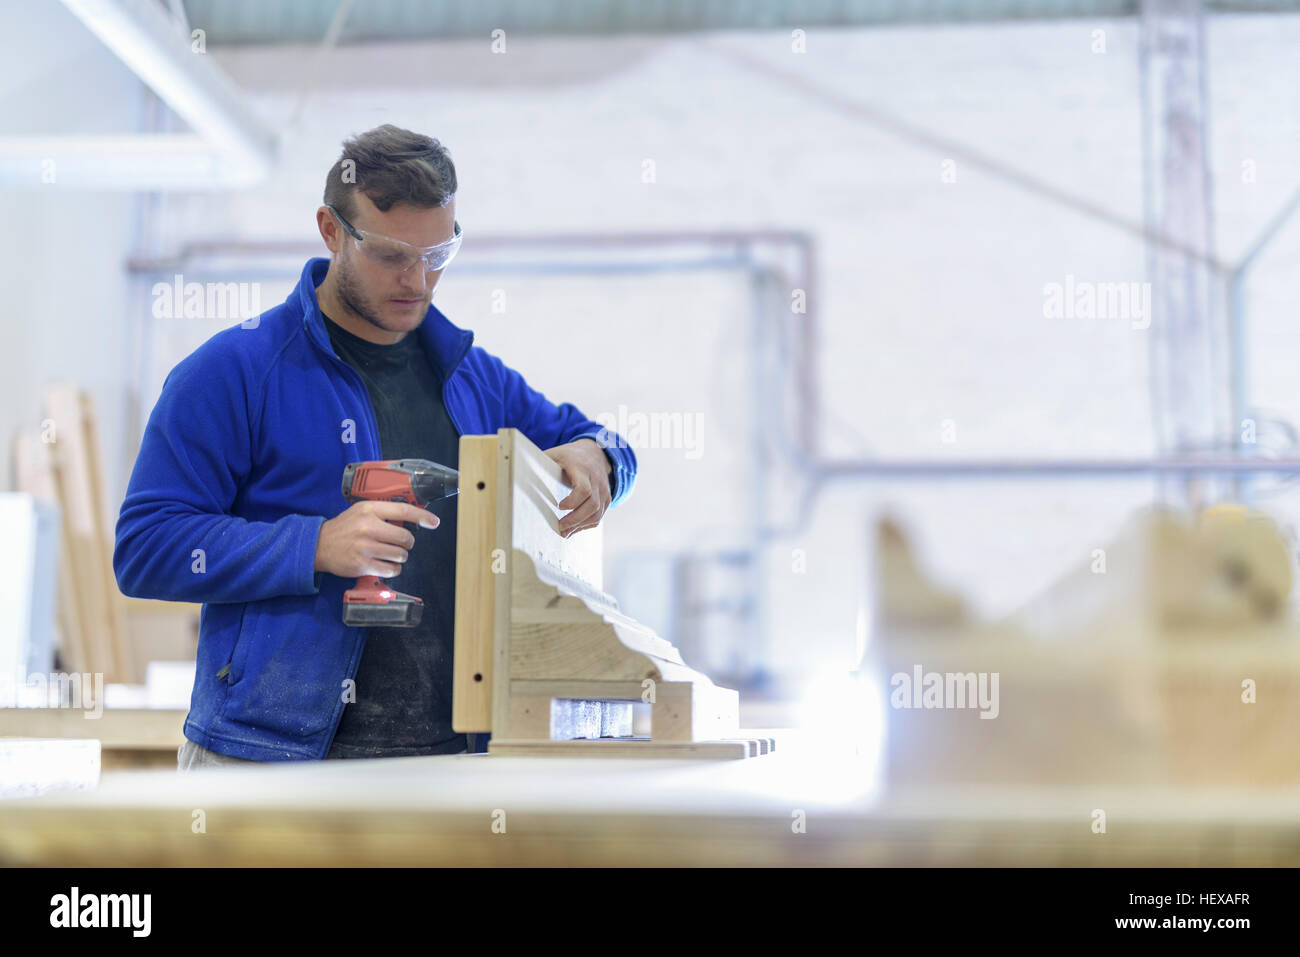 Carpenter making moulds in architectural stone factory - Stock Image